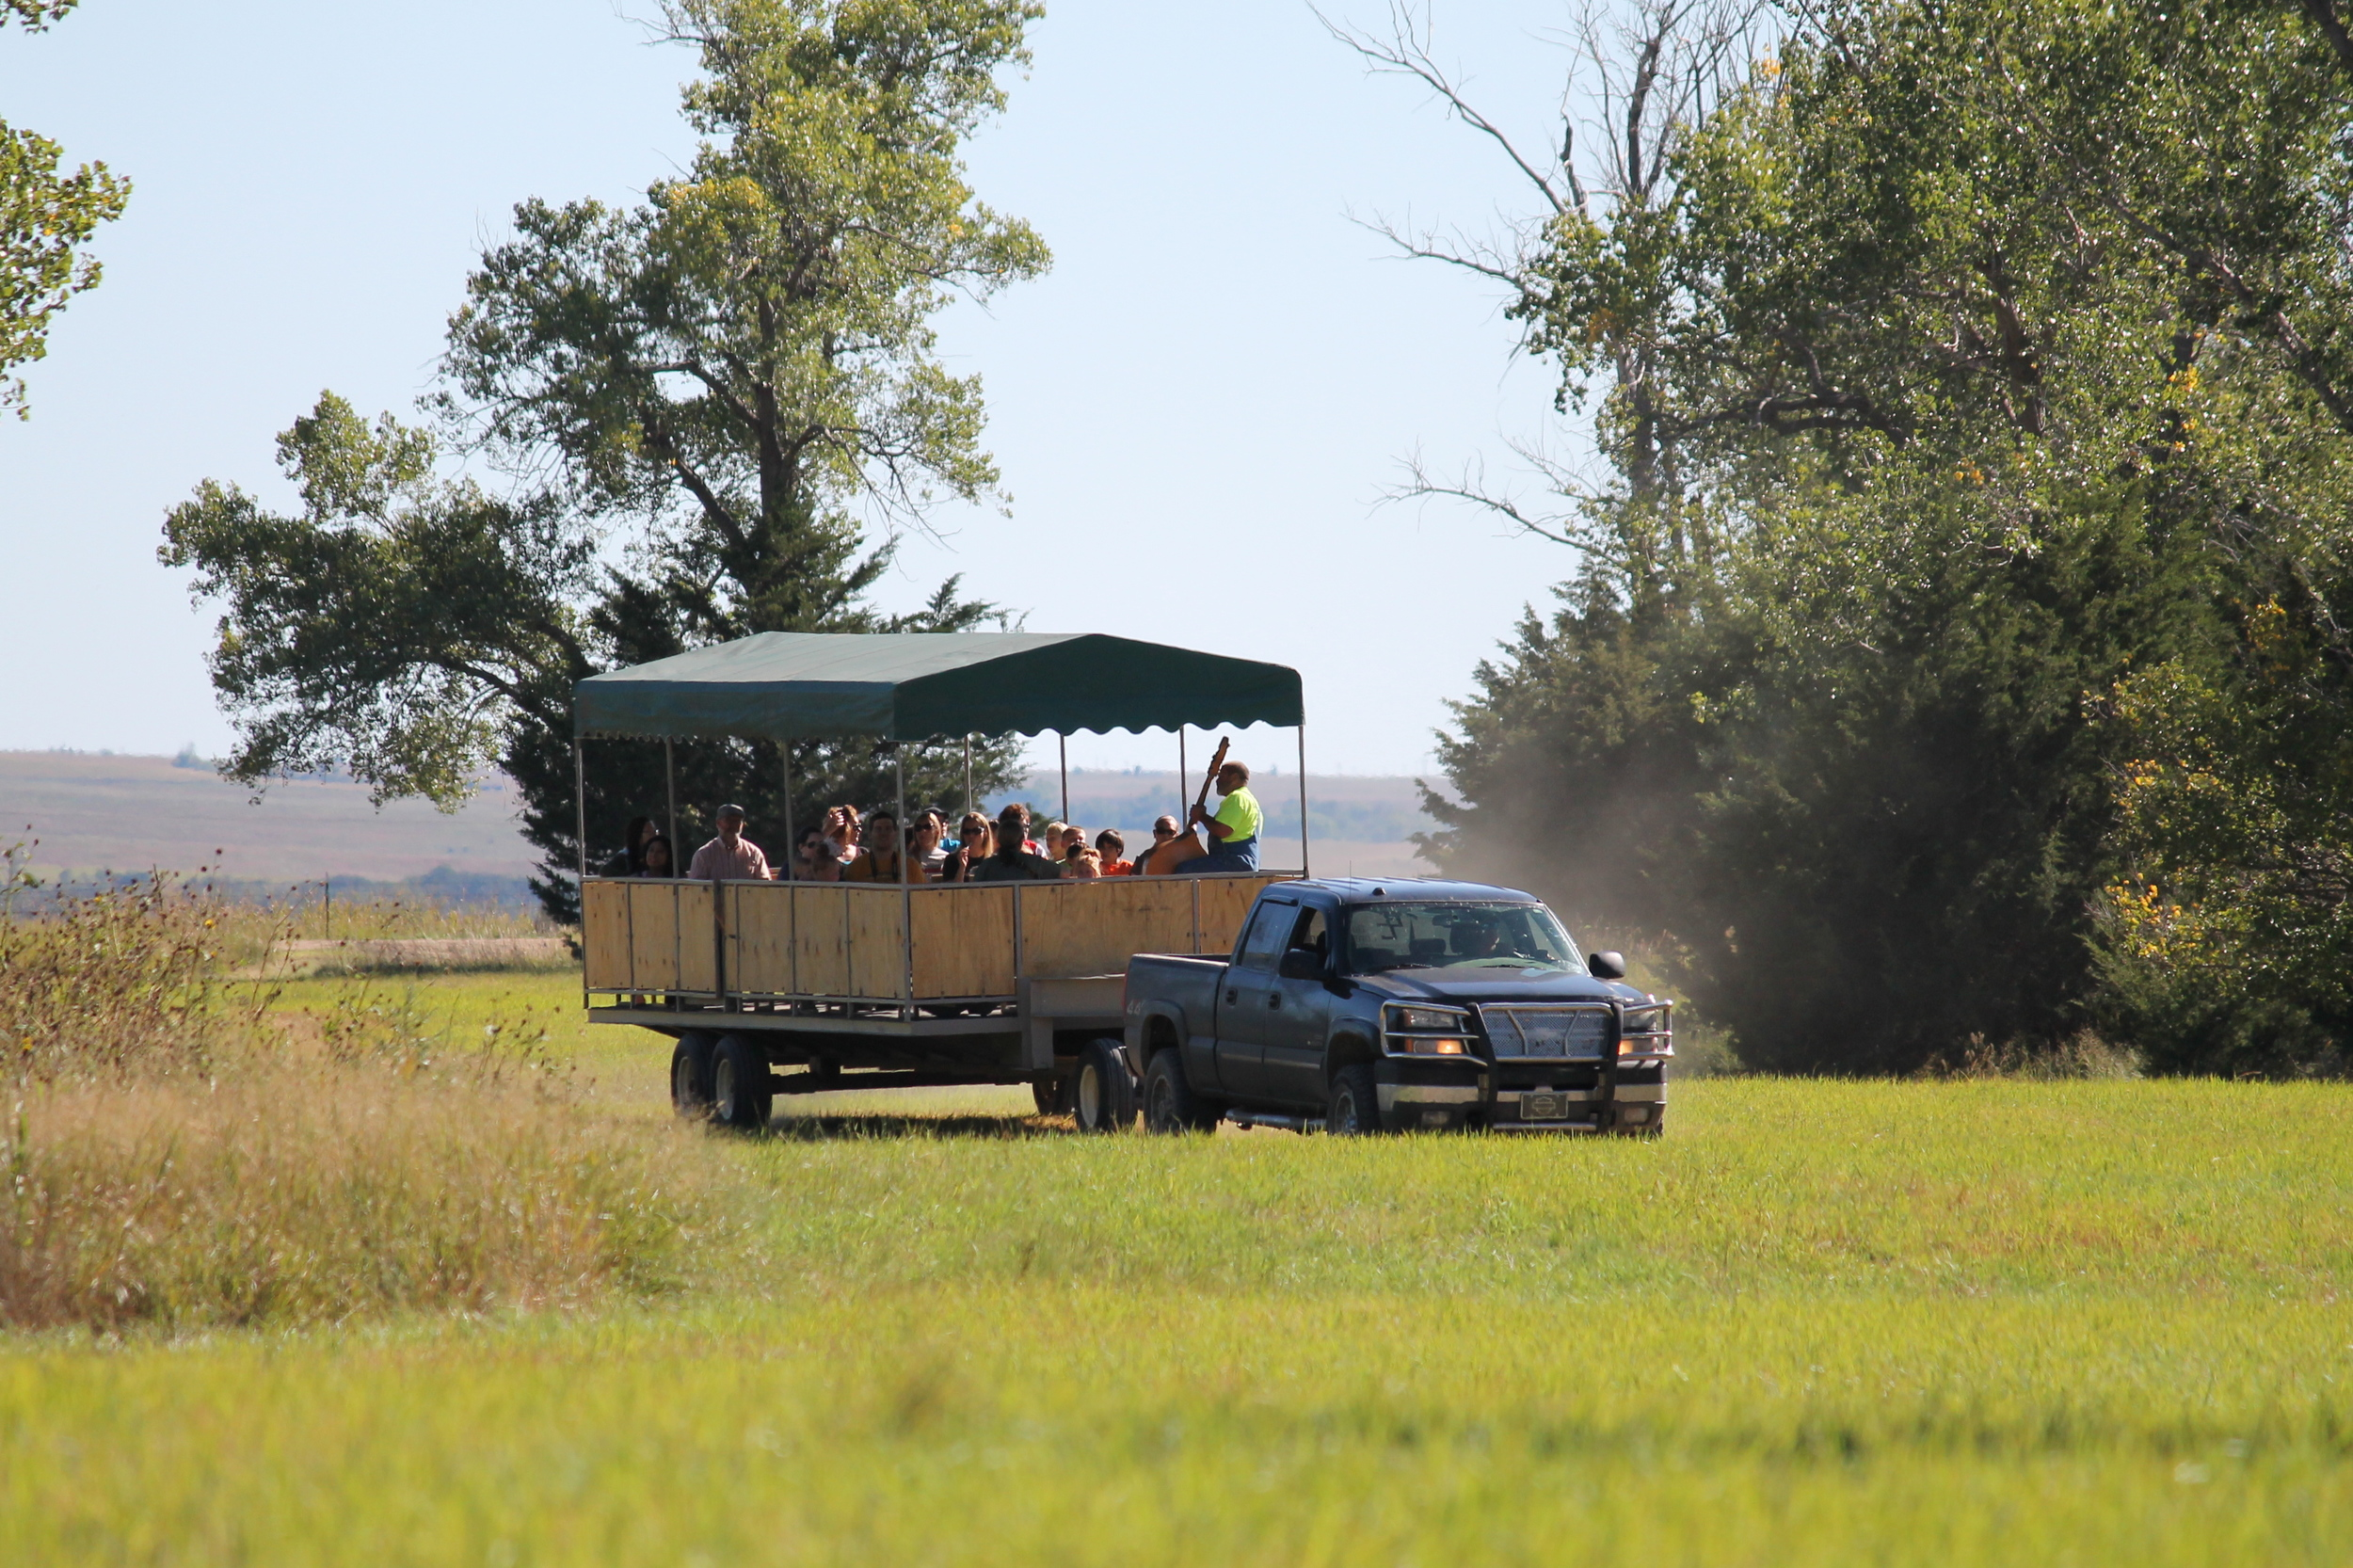 Trolley Rides through Scarecrow Meadow